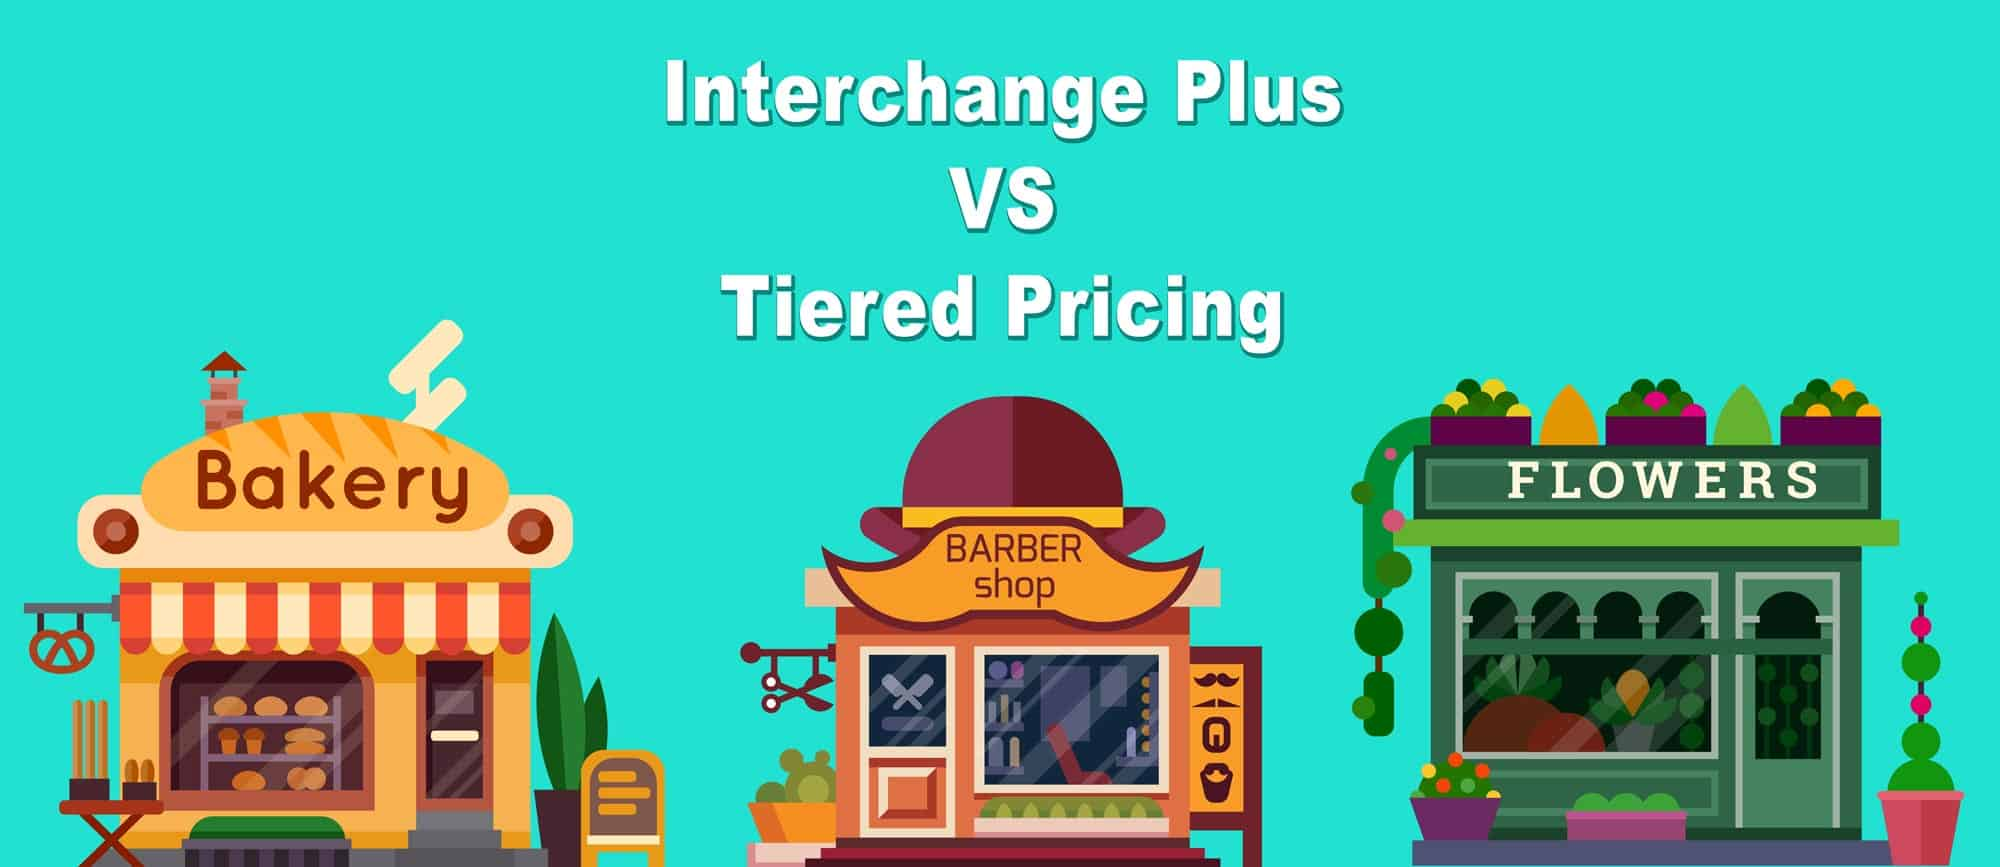 Interchange Plus vs Tiered Pricing